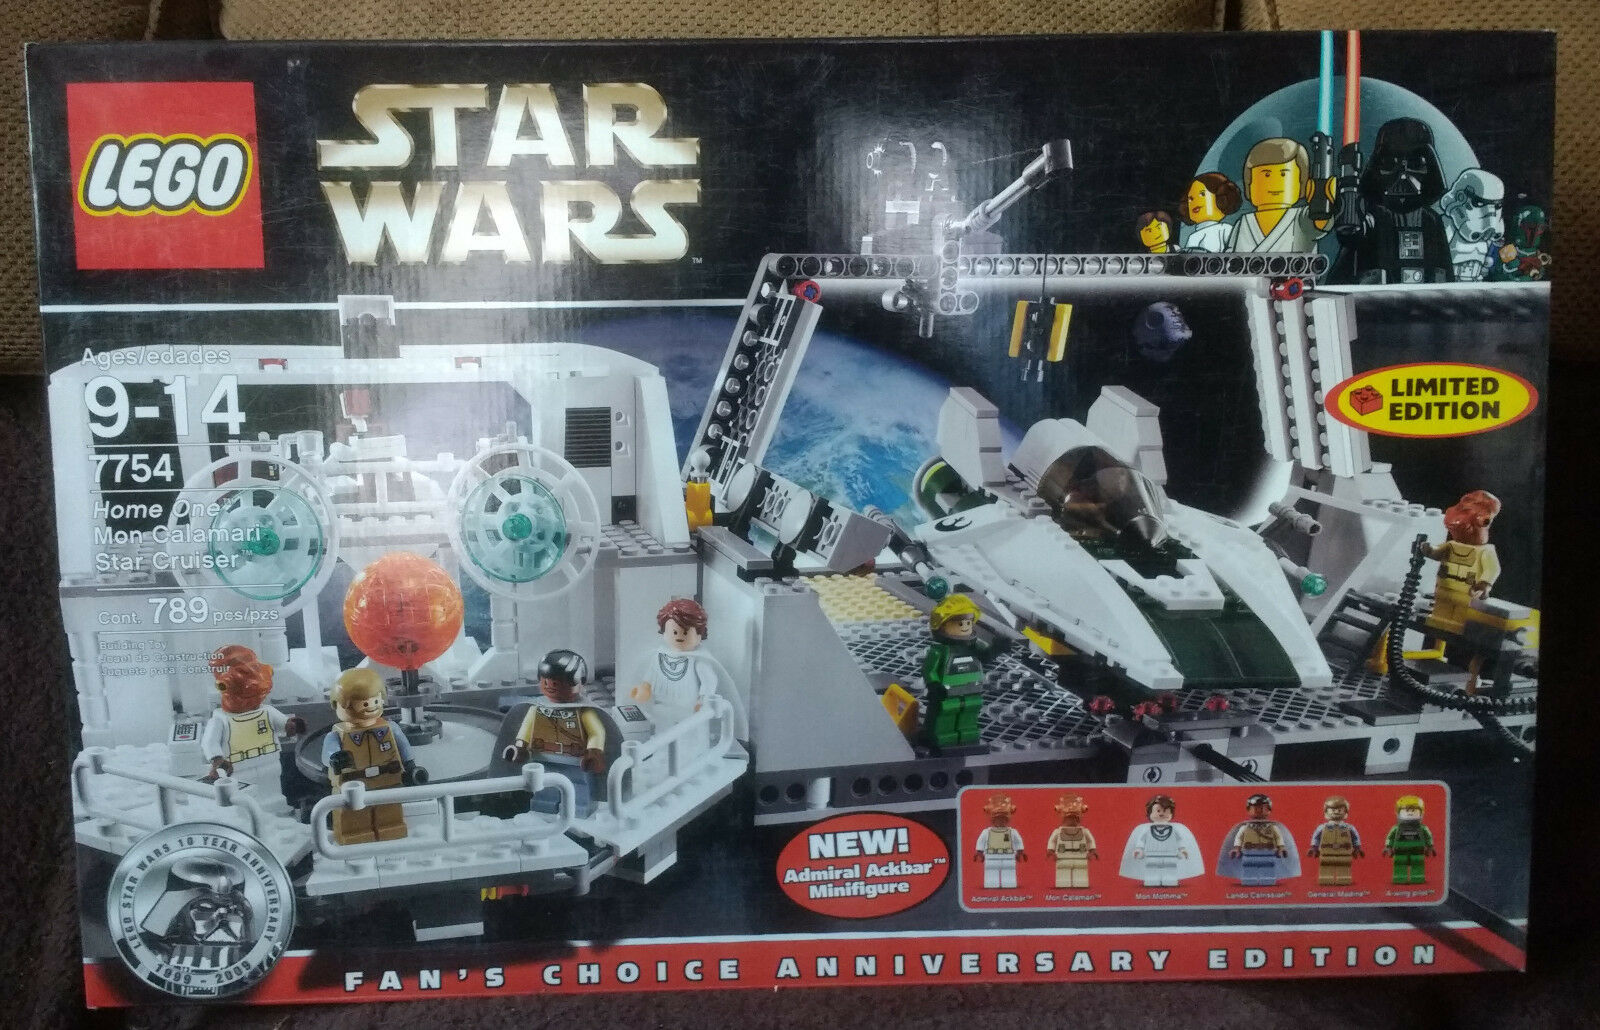 LEGO Star Wars Home One Mon Calamari Star Cruiser (7754) New MISB